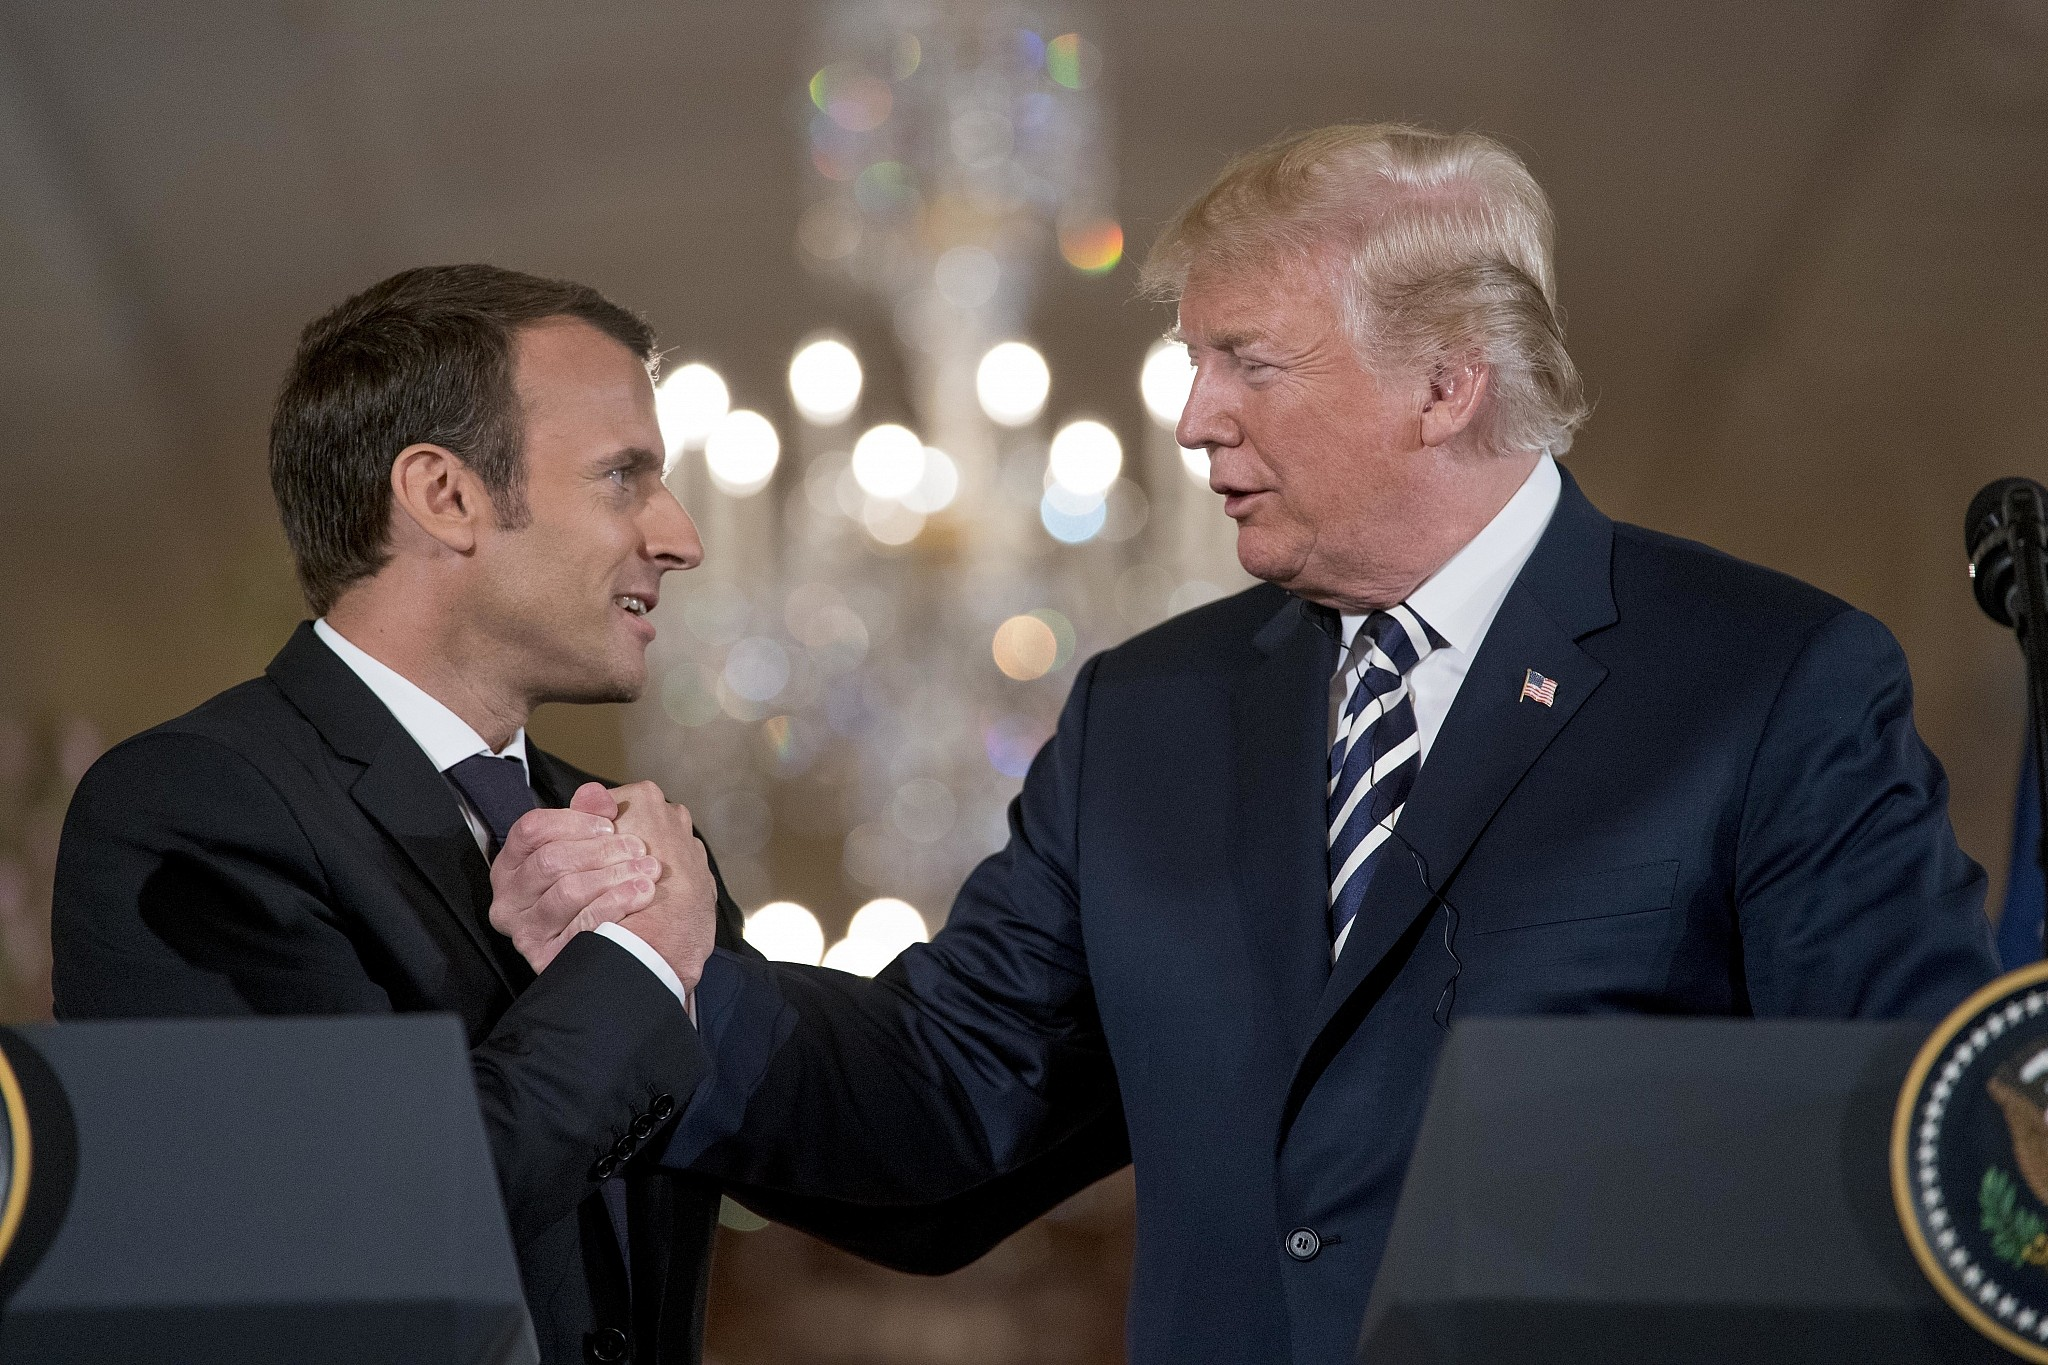 Macron believes Trump will 'get rid' of Iran deal to please his base | The  Times of Israel